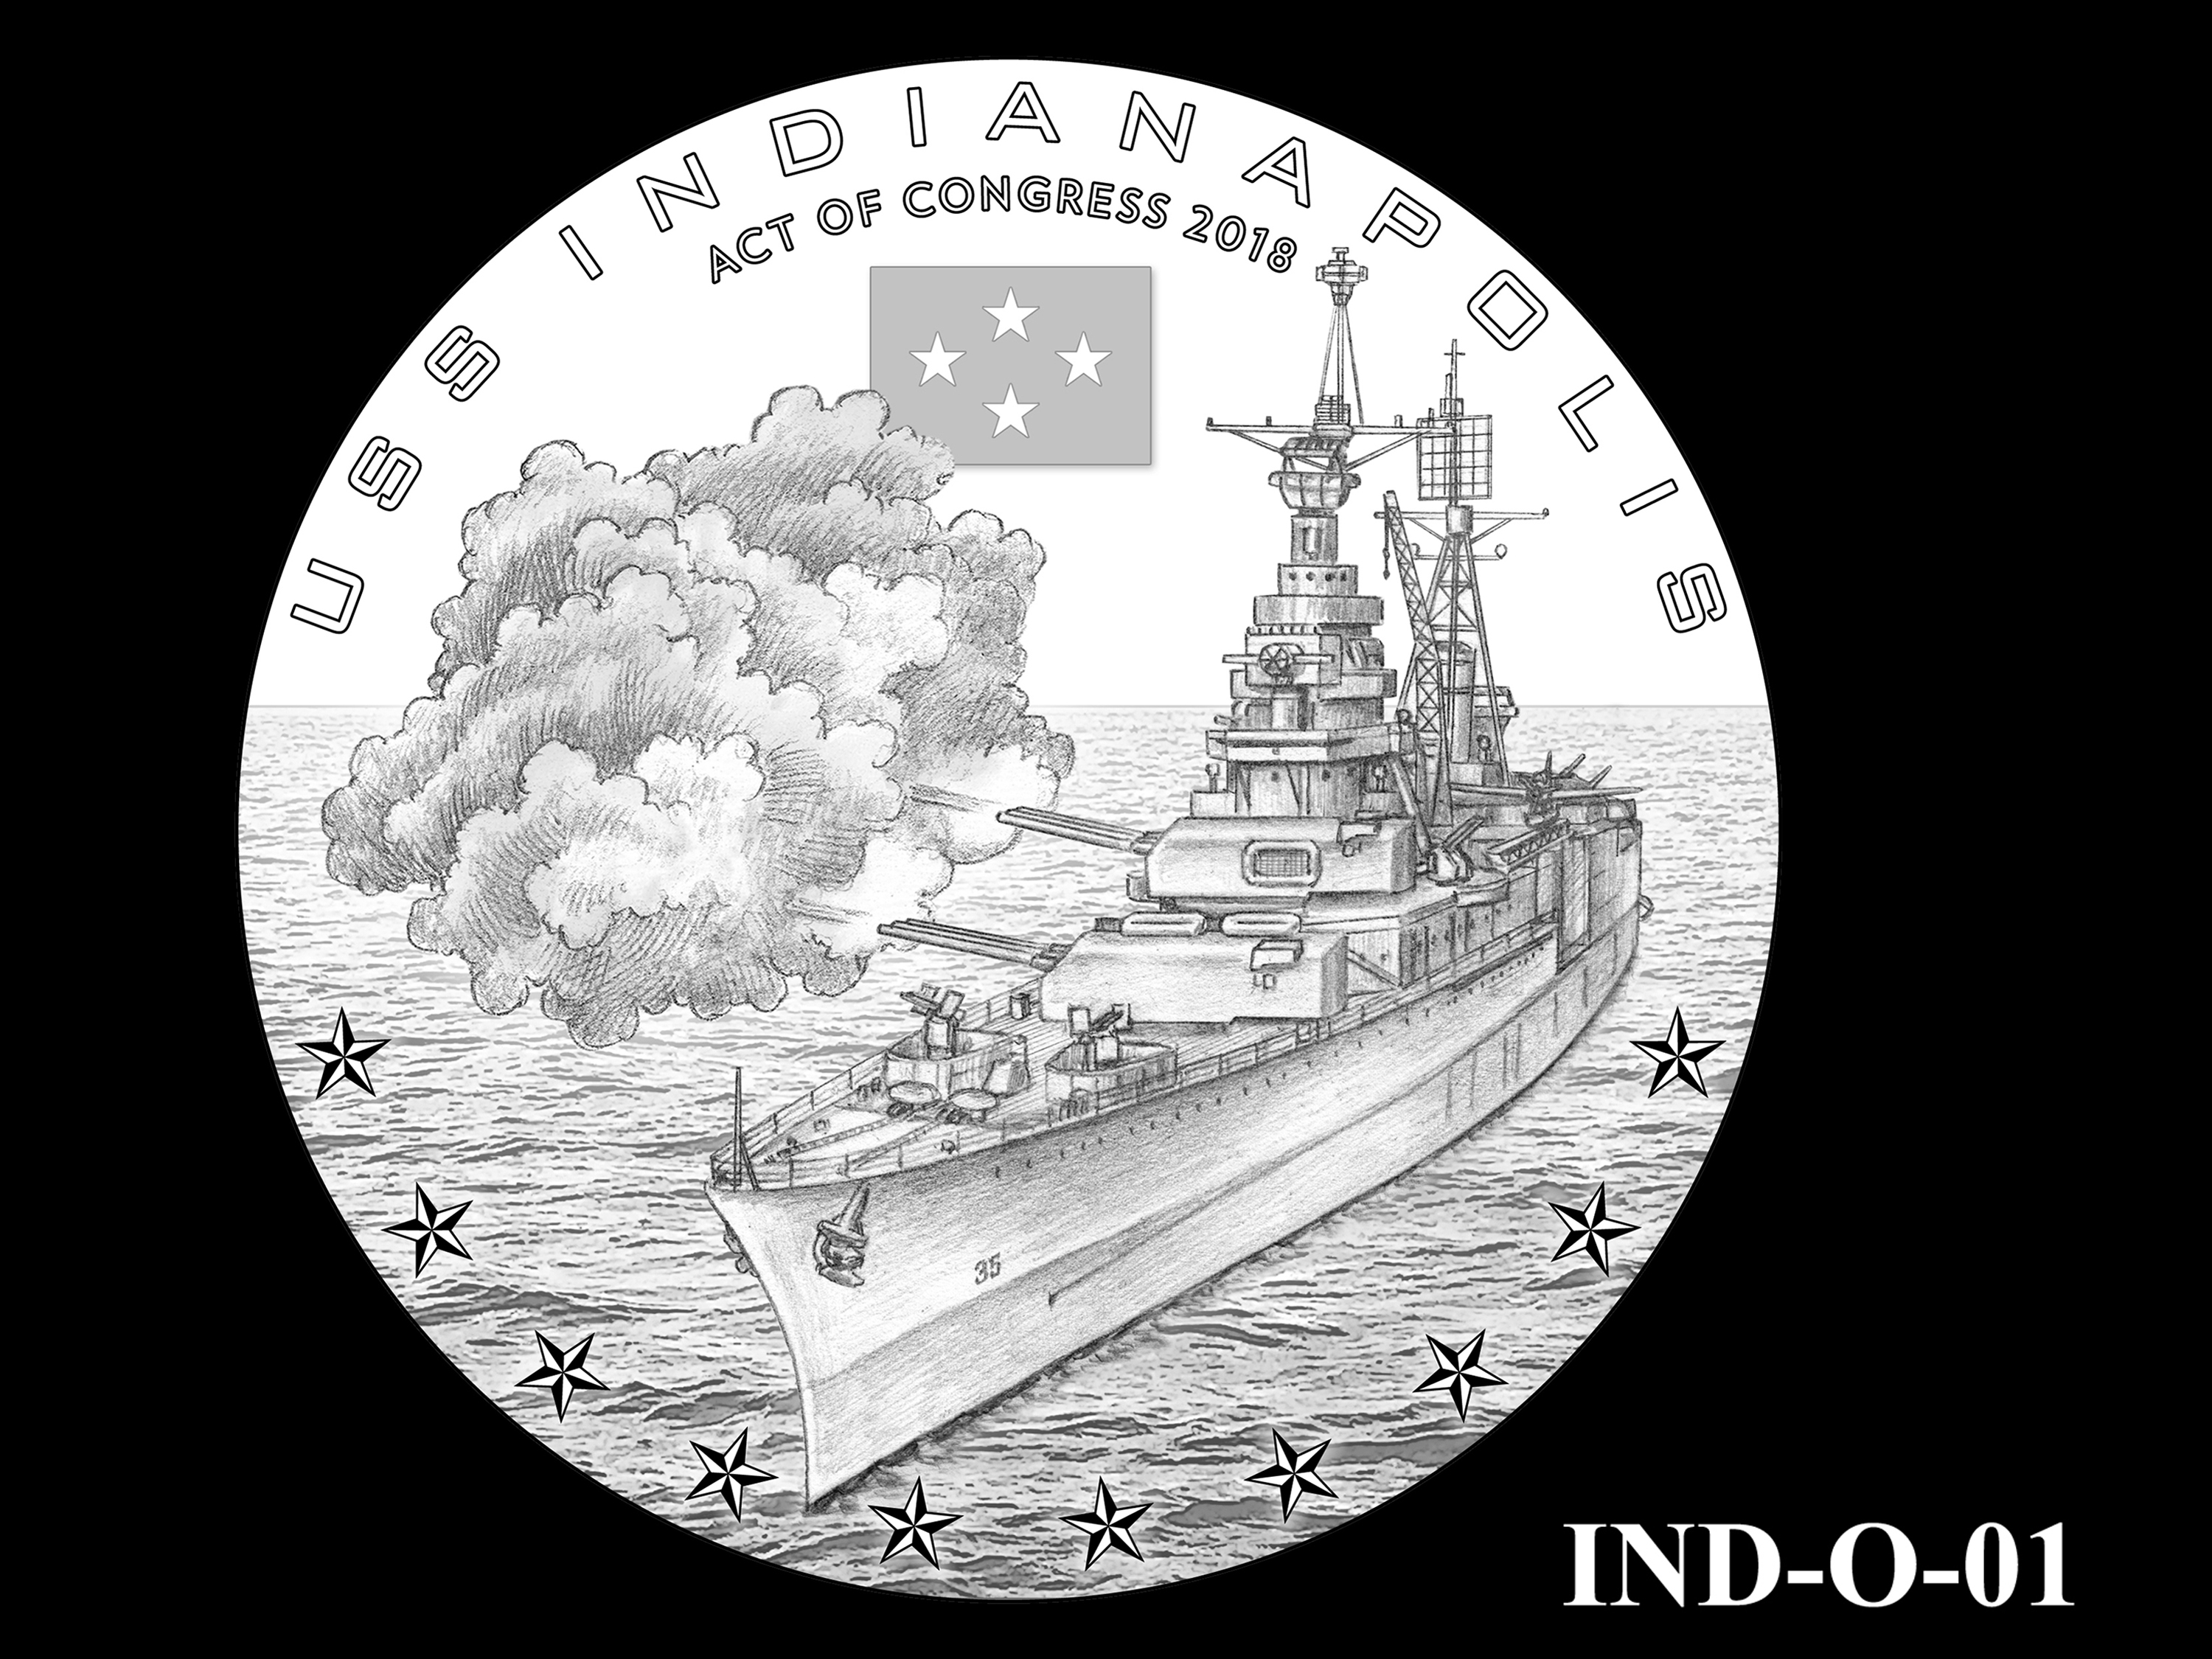 IND-O-01 - USS Indianapolis Congressional Gold Medal - Obverse